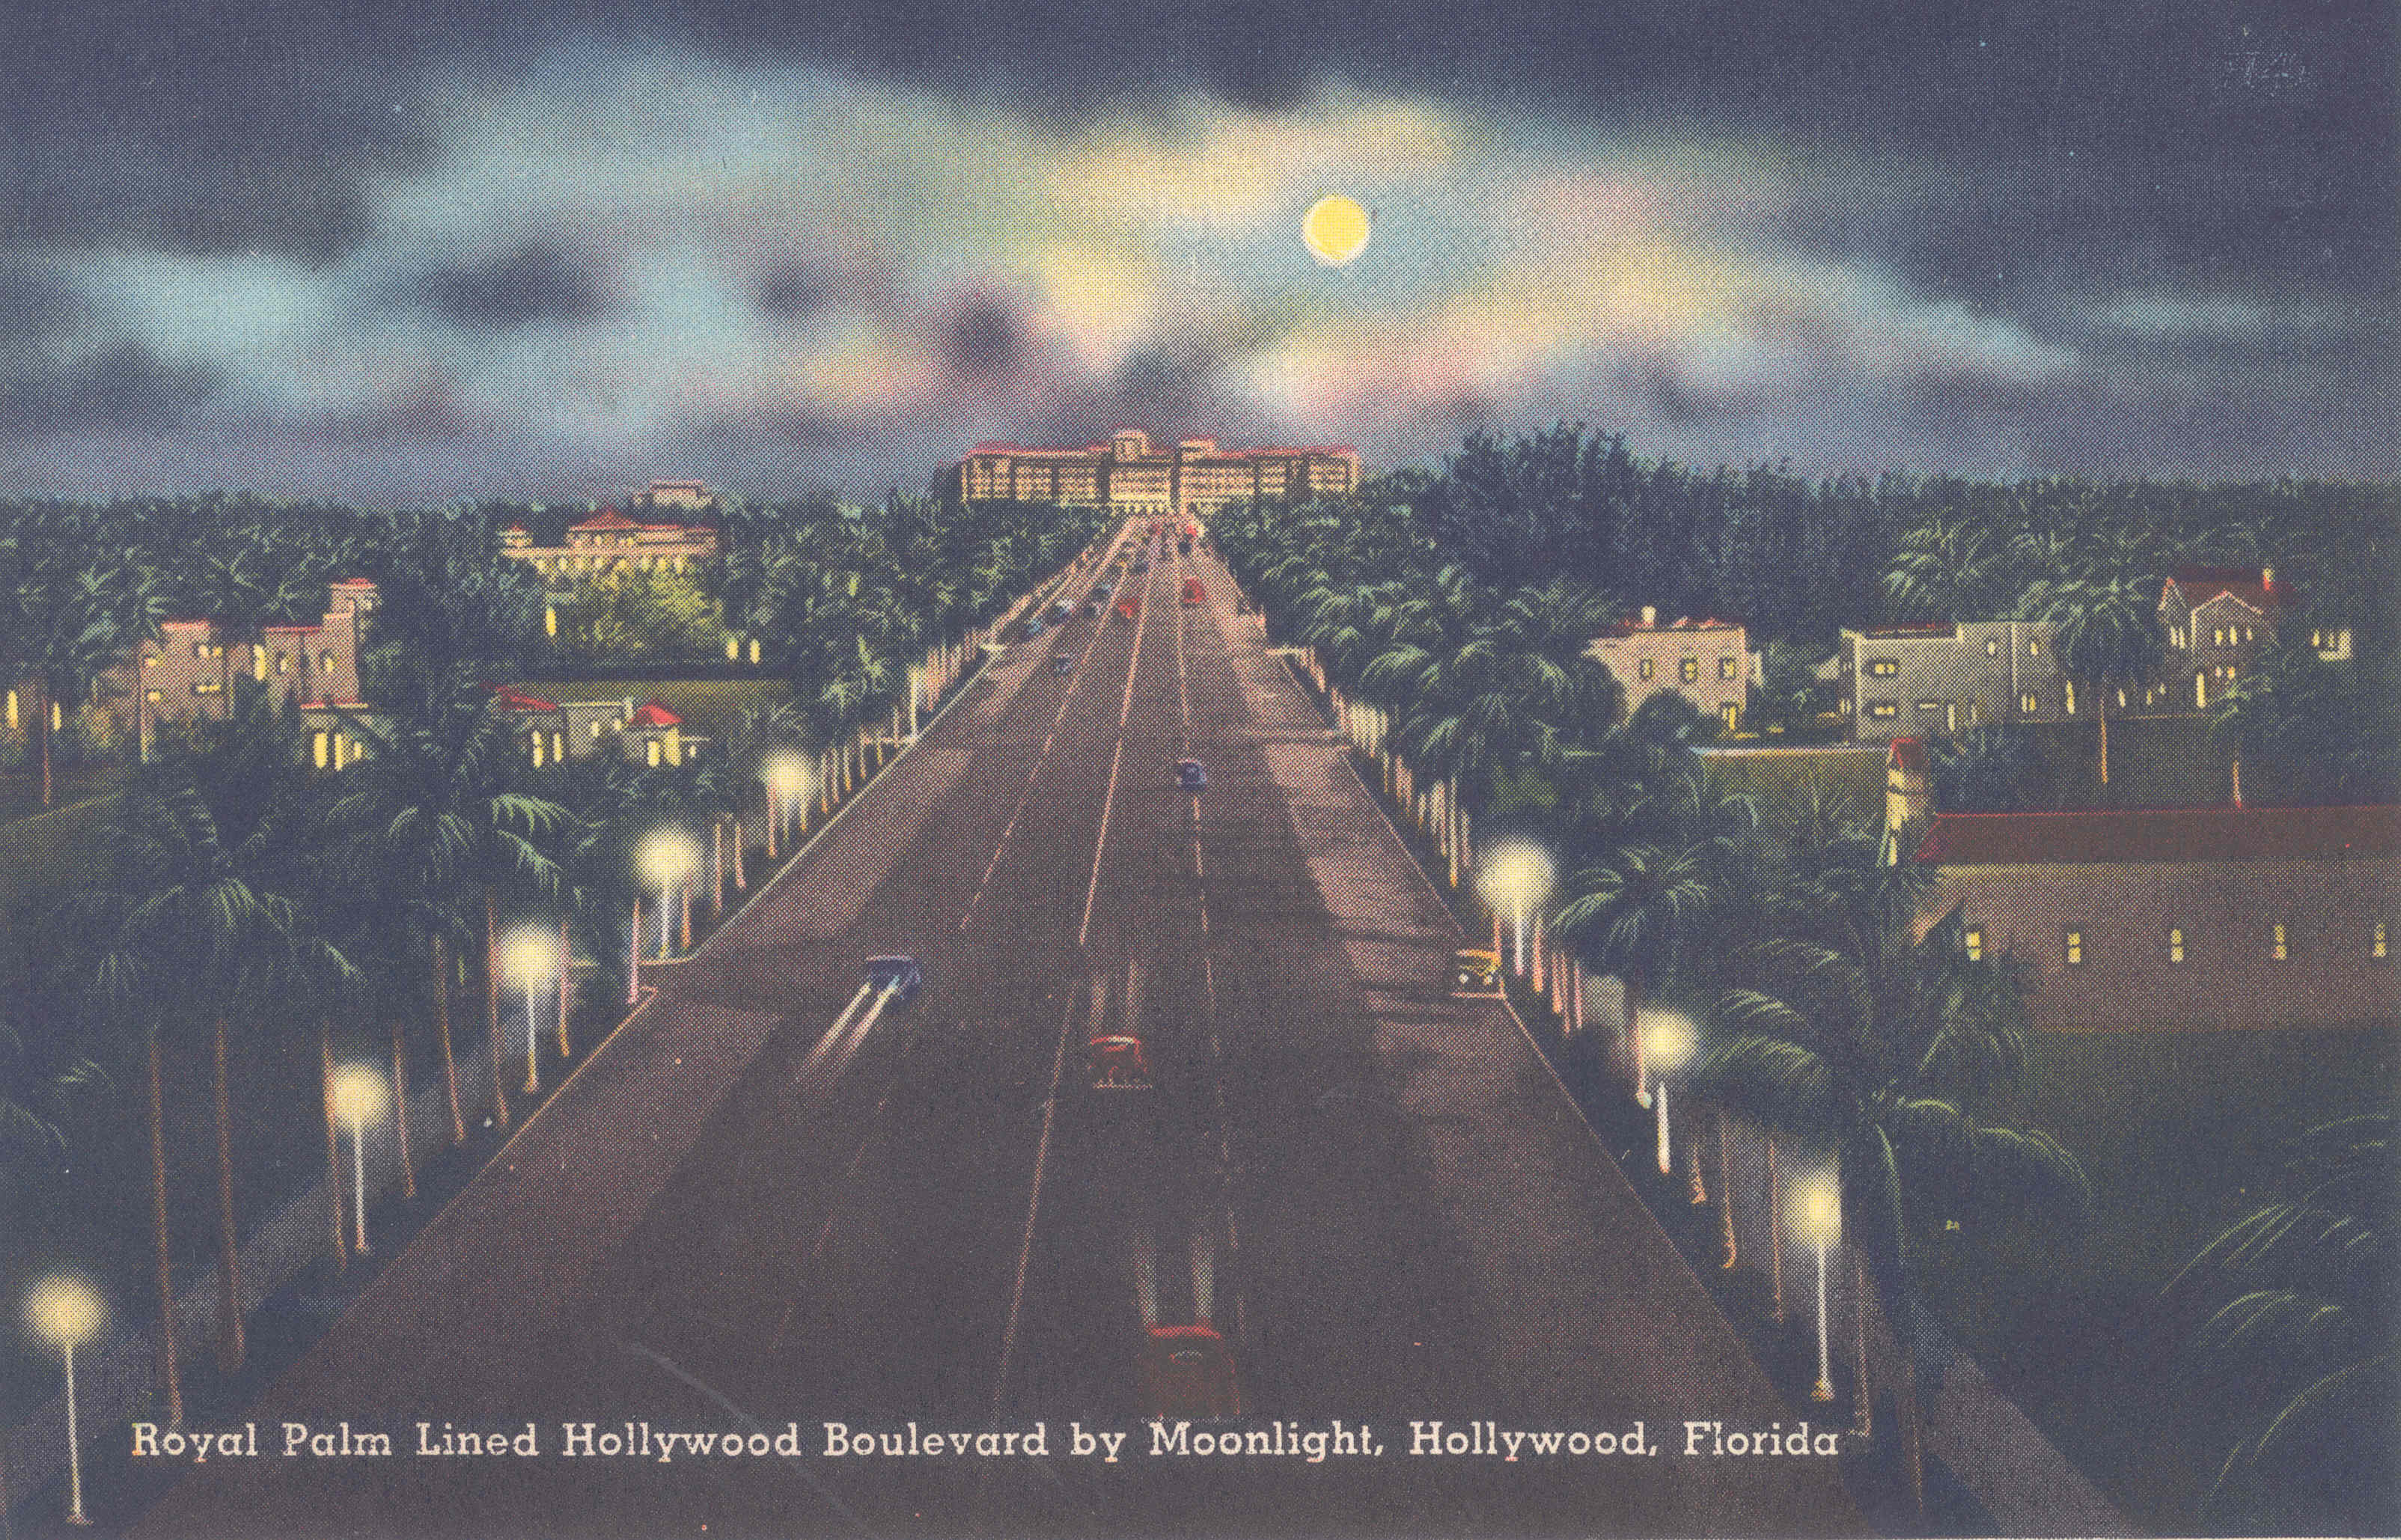 Royal Palm Lined Hollywood Boulevard by Moonlight